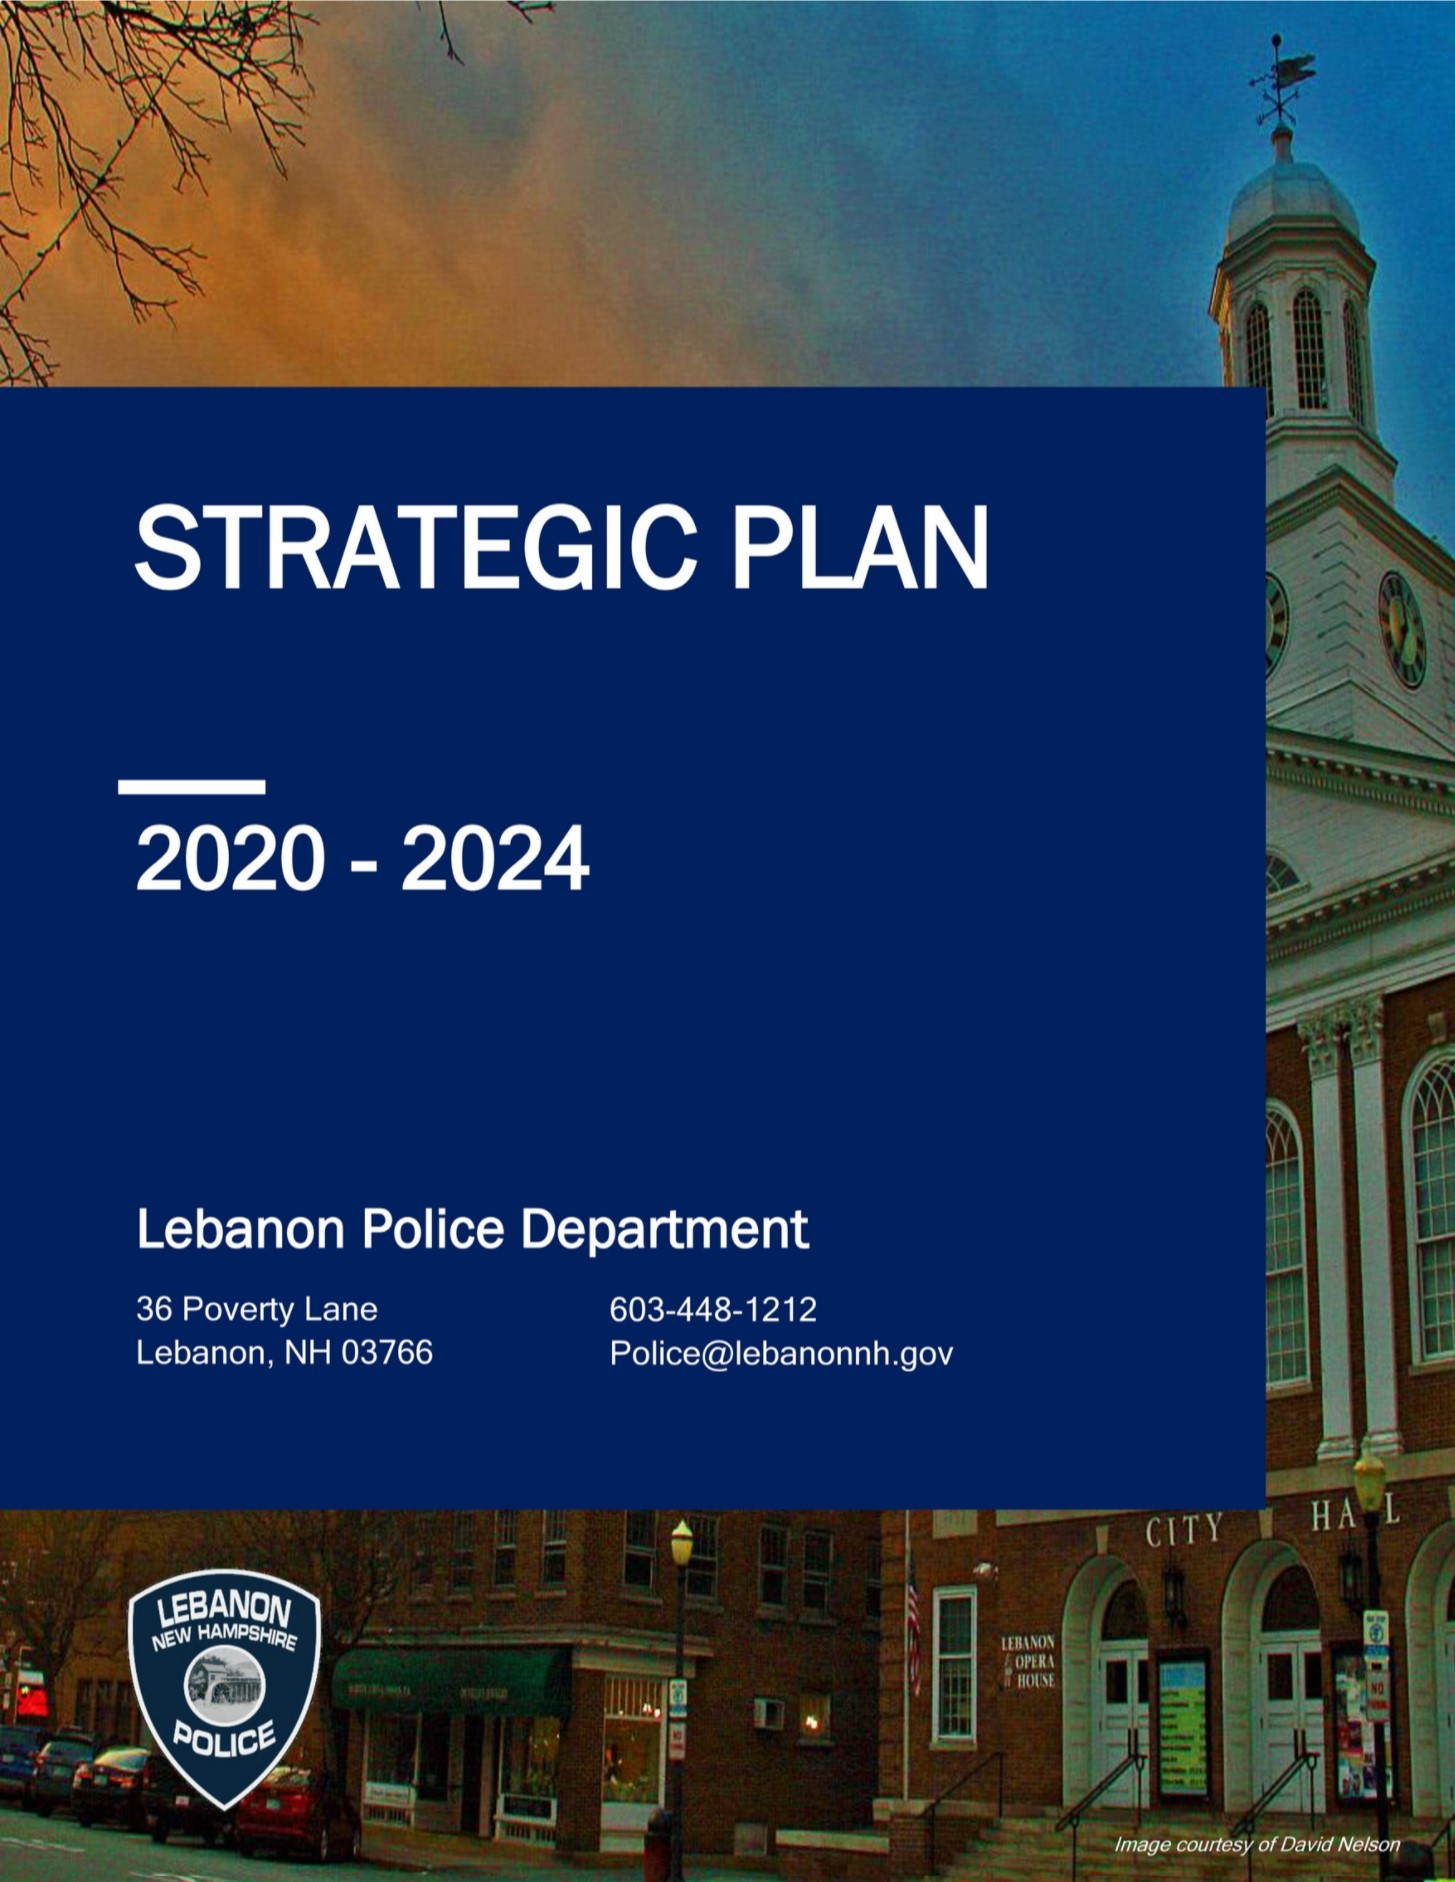 LPD Strategic Plan 2019-2023 Opens in new window